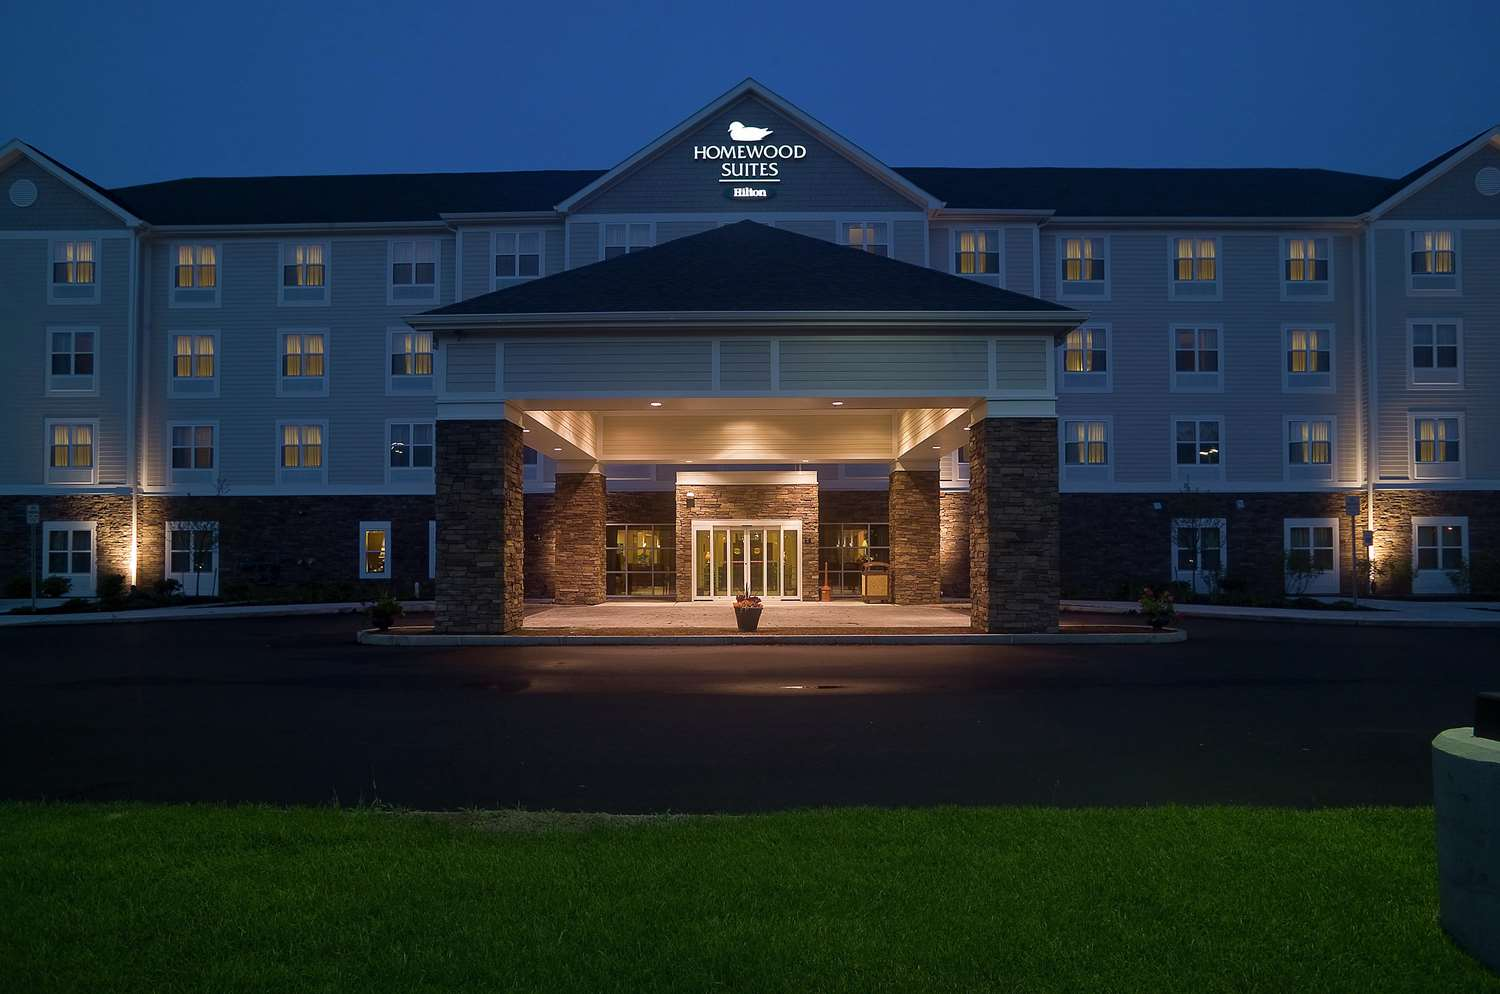 Homewood Suites by Hilton South Portland